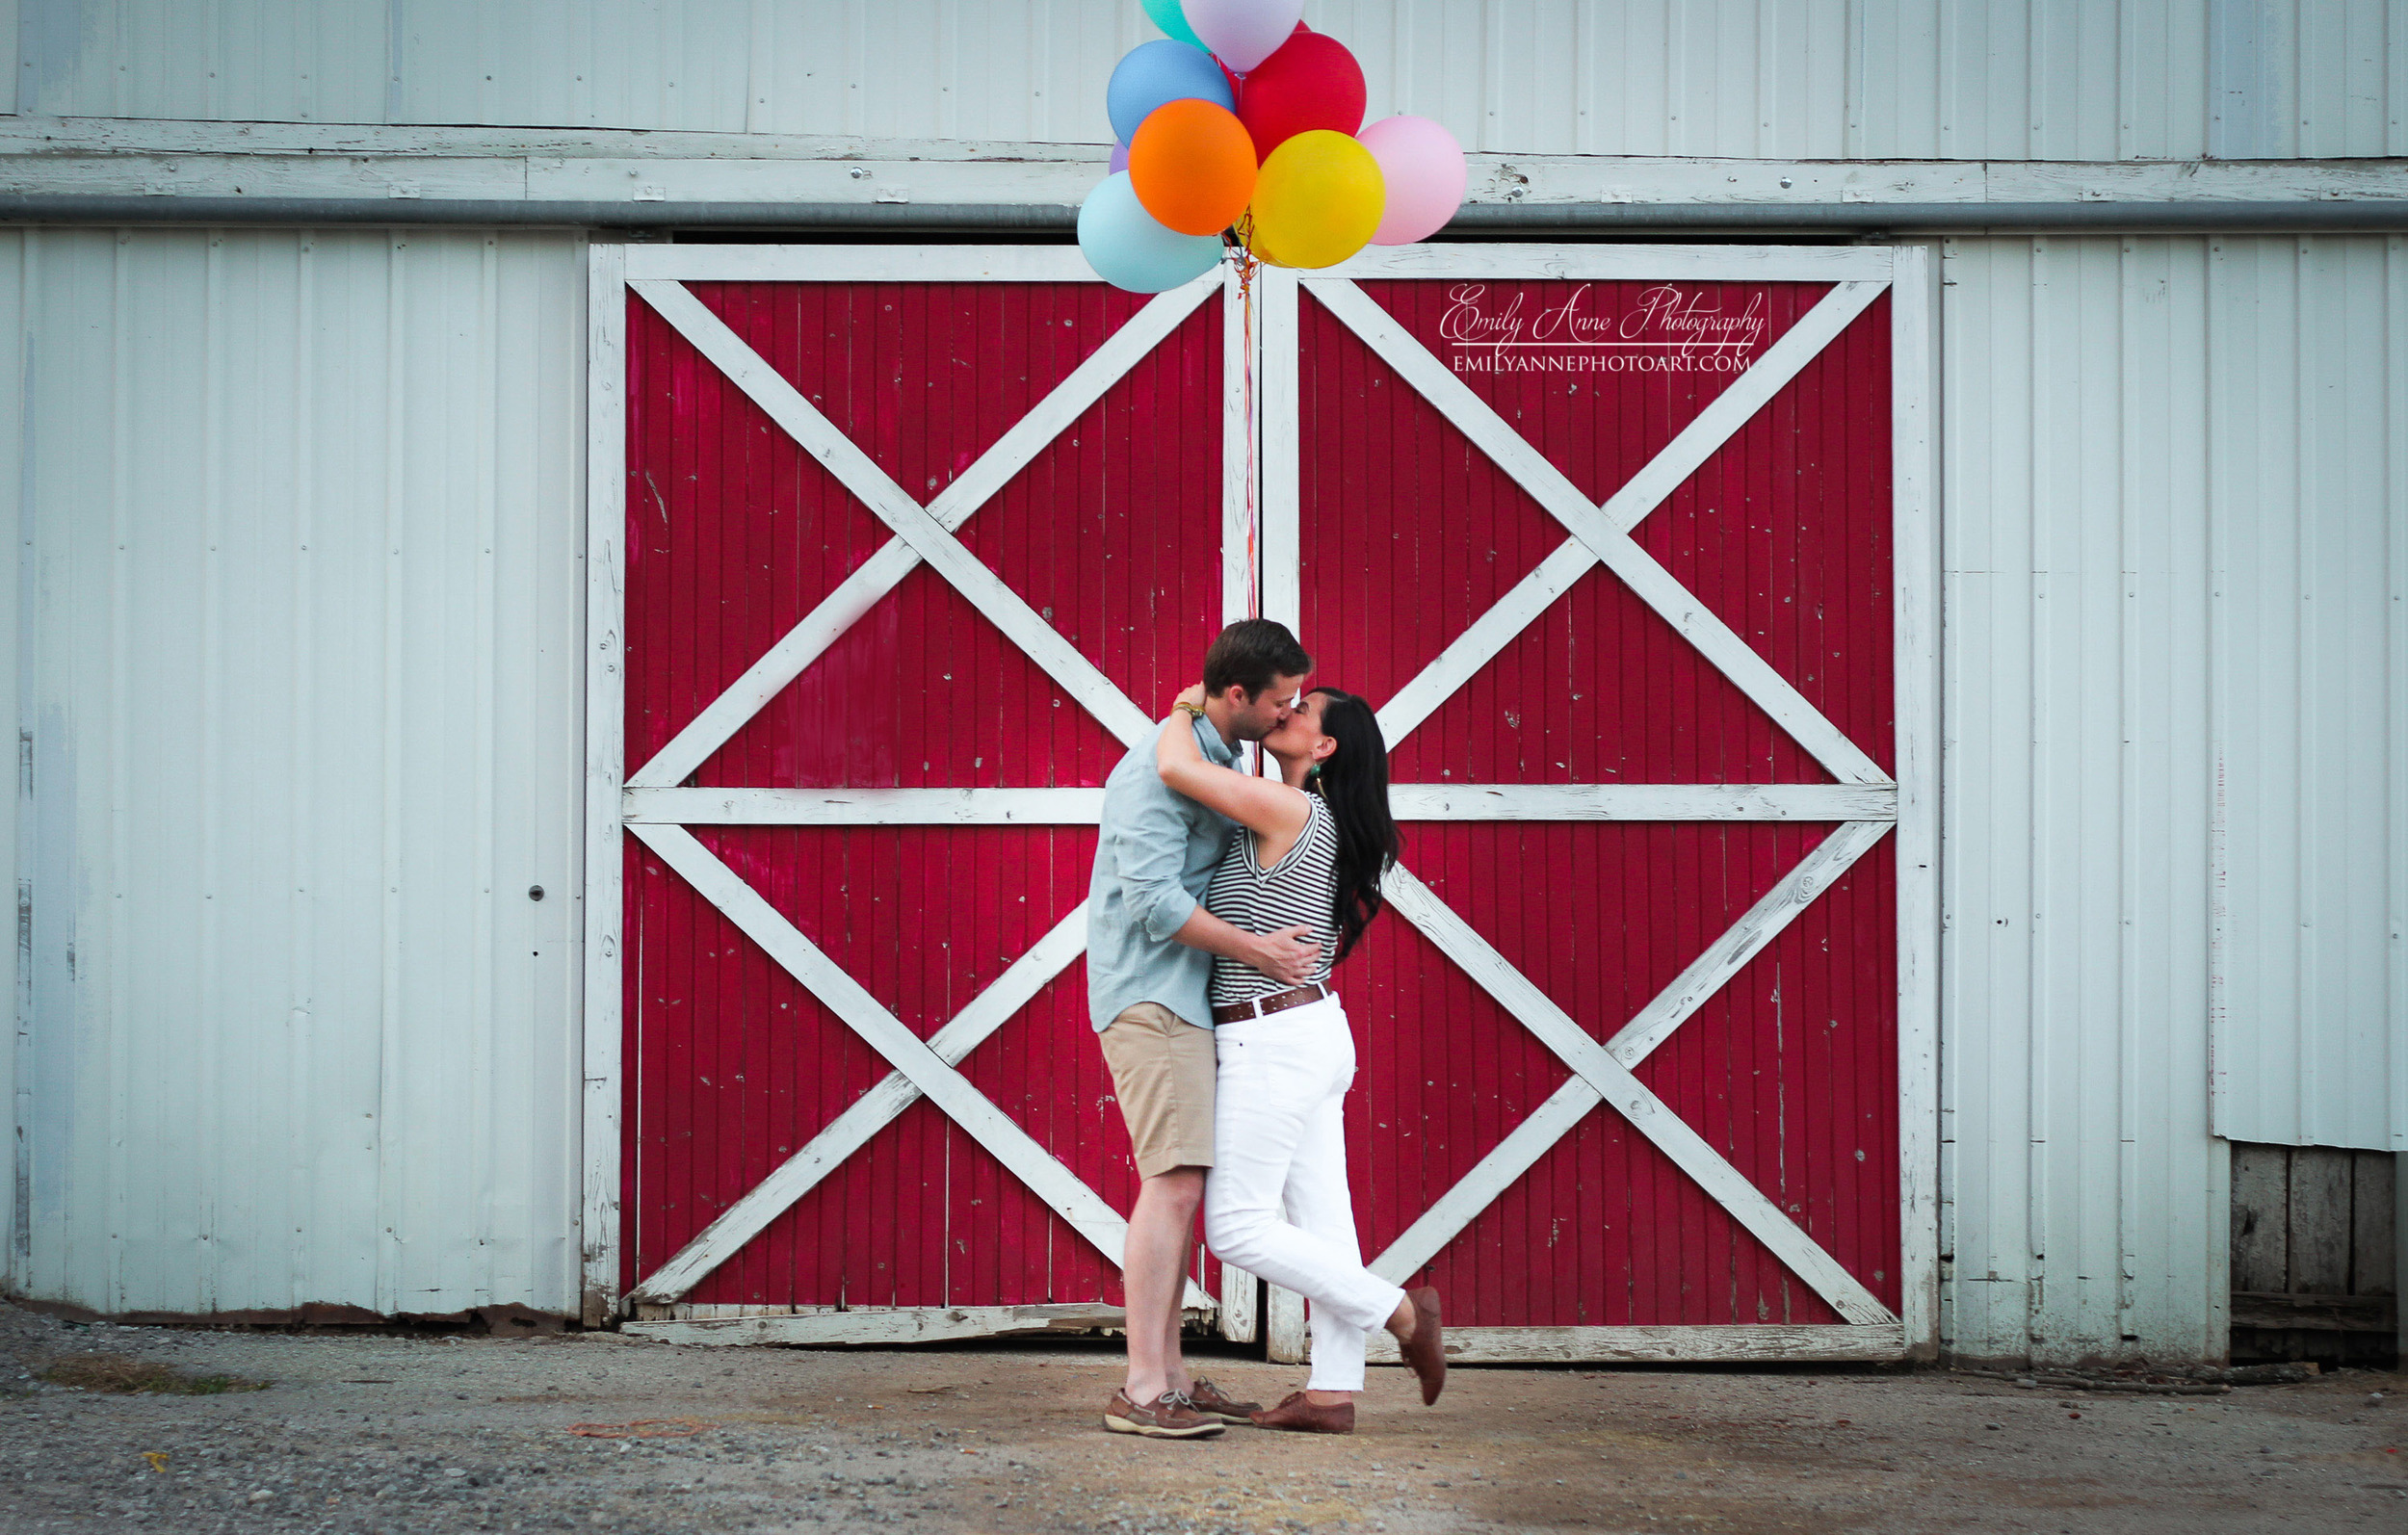 The balloons, the symmetry of the barn, this beautiful couple... I love this shot!